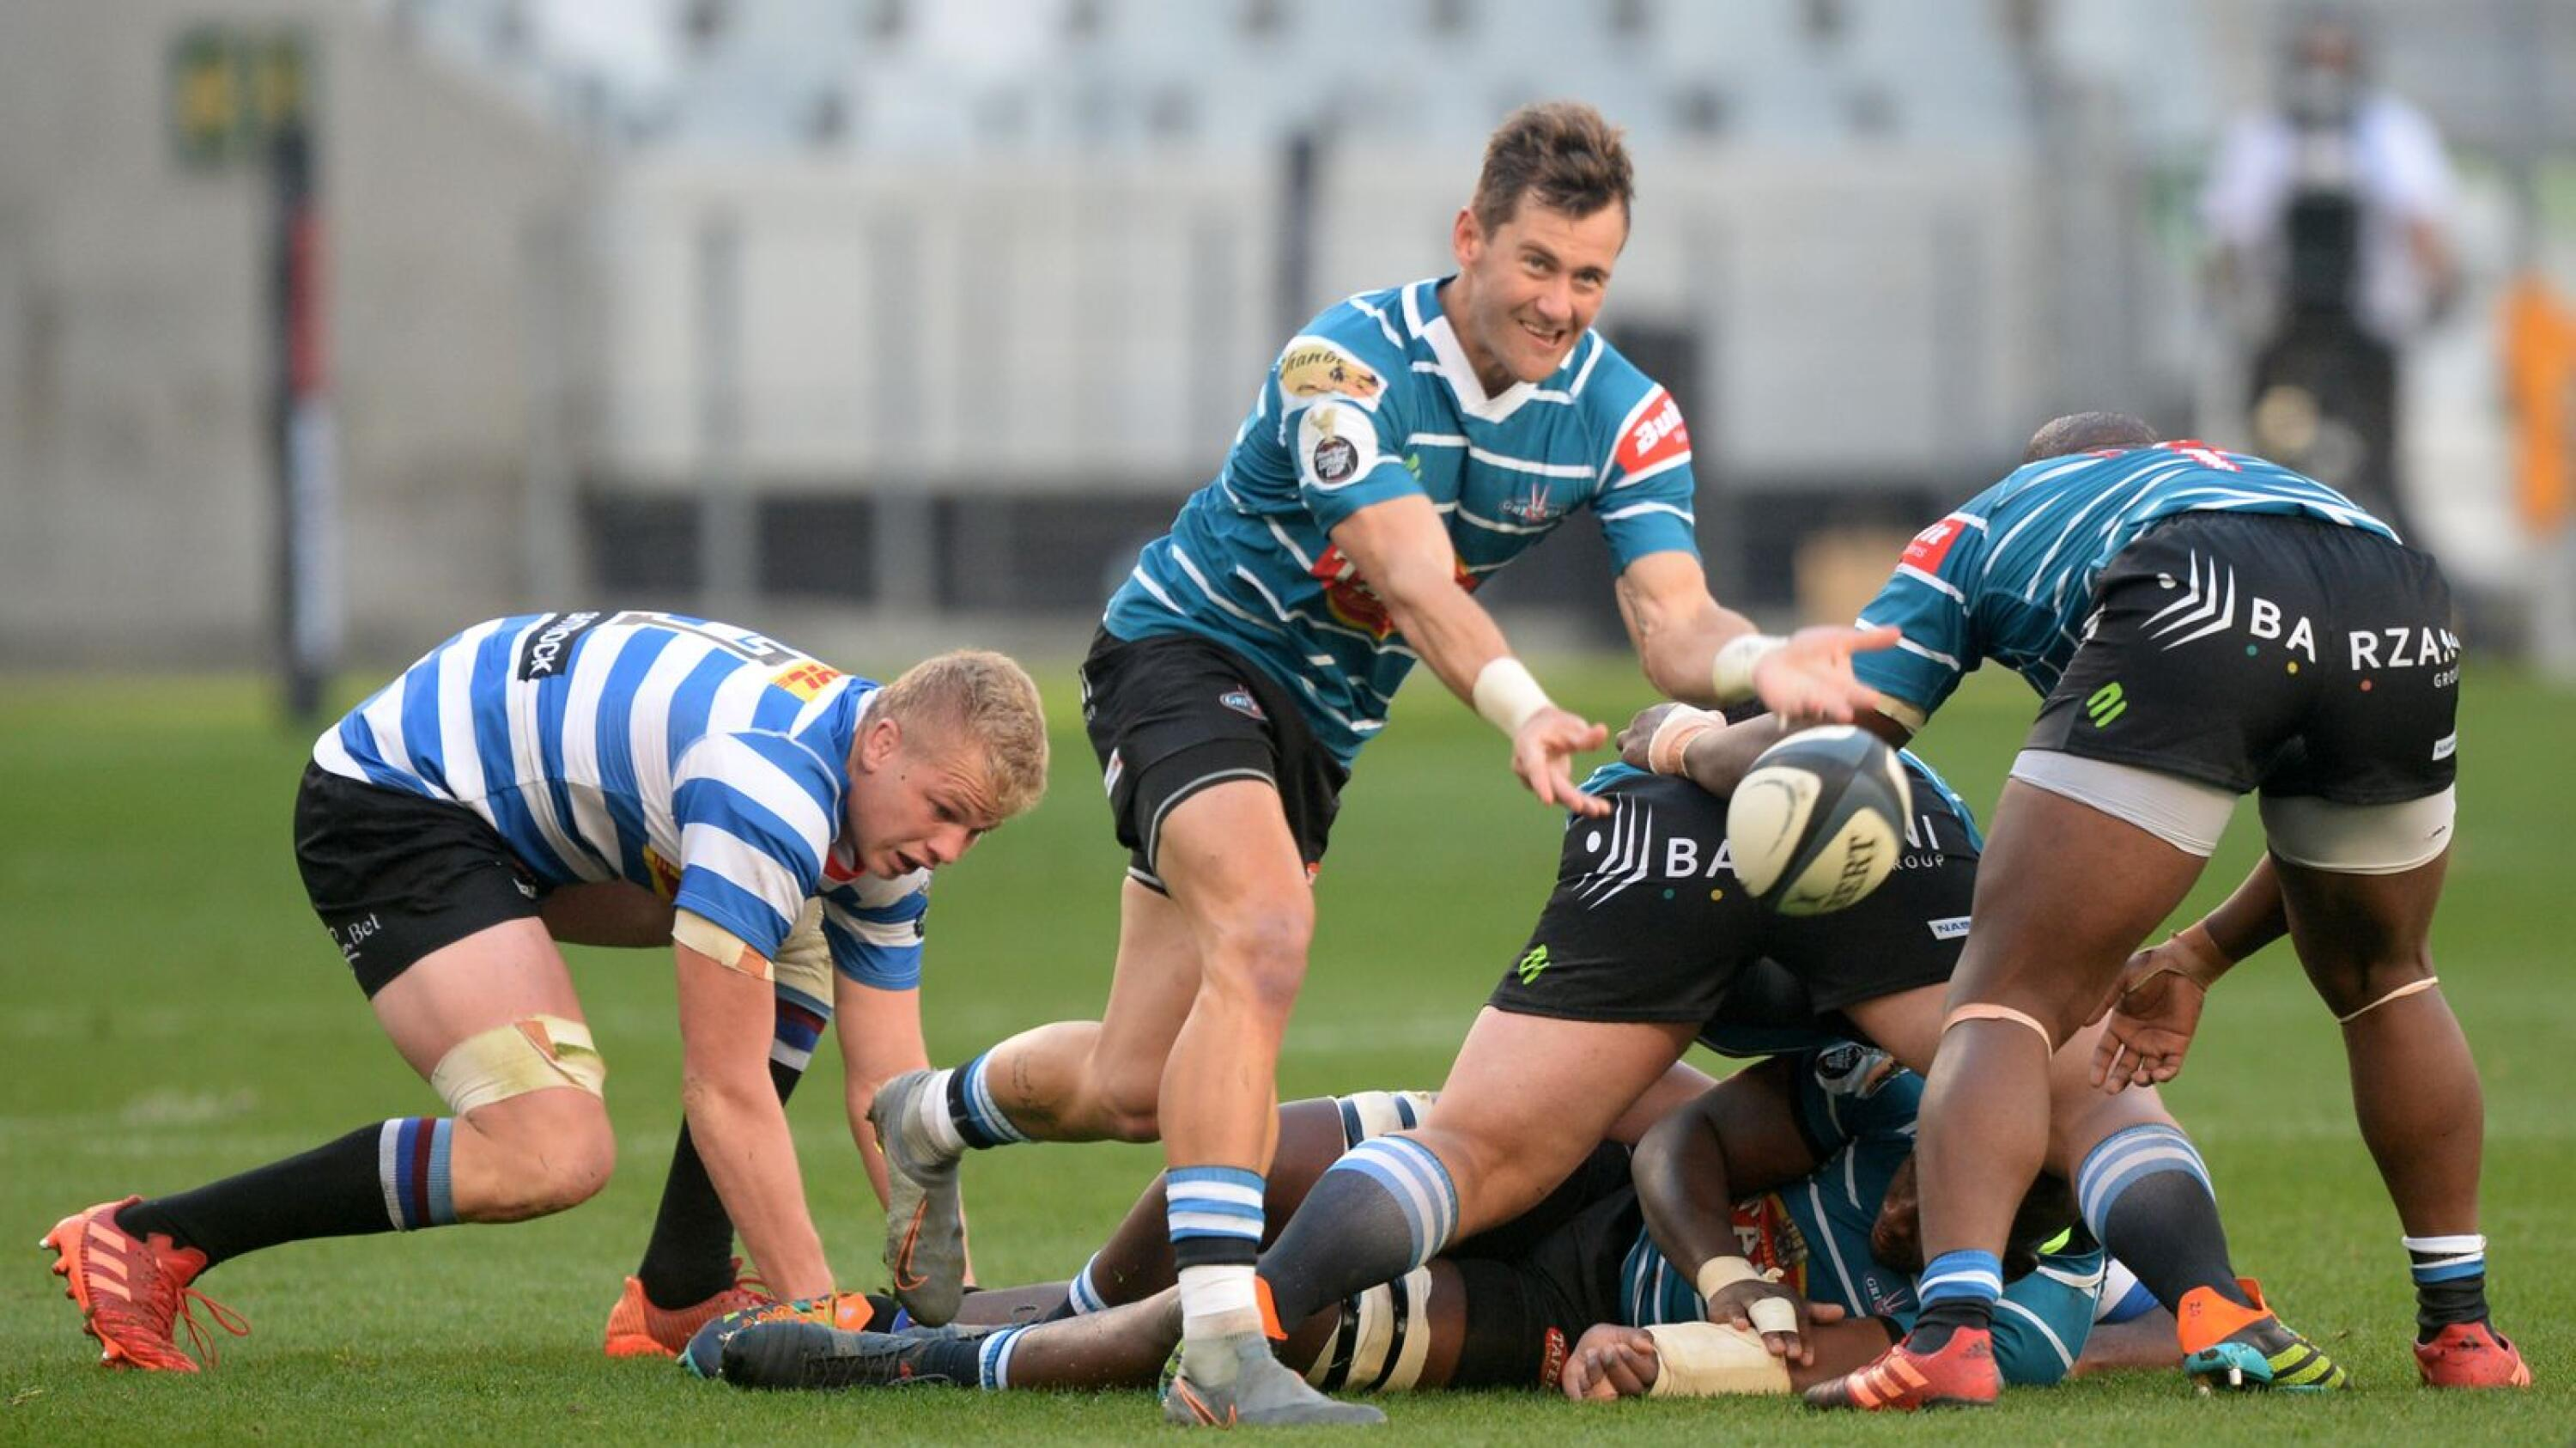 Stefan Ungerer of Griquas gets the ball away during their Currie Cup game against Western Province at the Cape Town Stadium on Wednesday evening